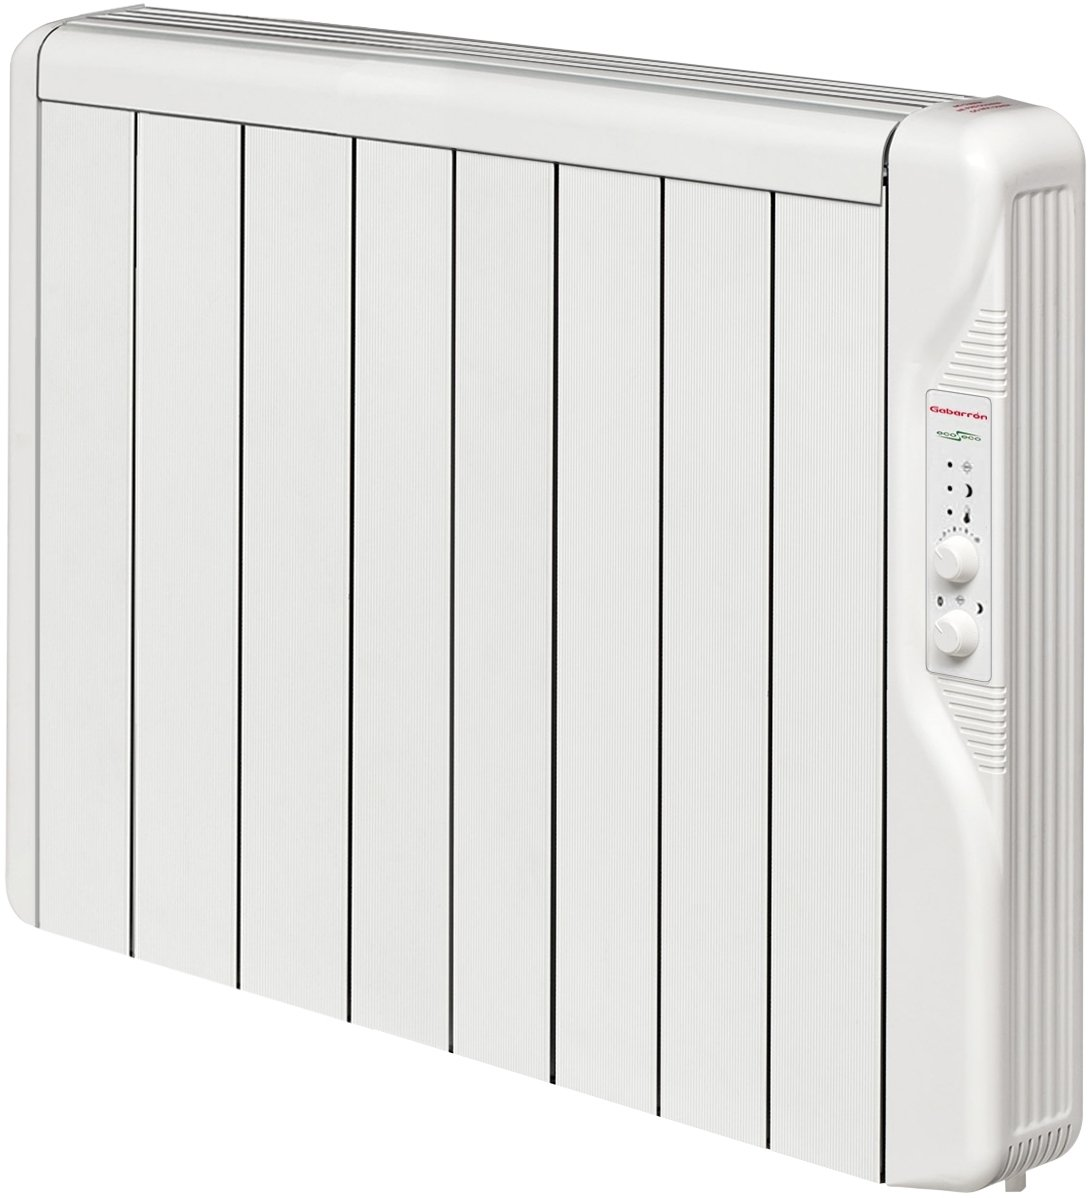 elnur connected ecrx8p 1000w electric radiator 735mm 8. Black Bedroom Furniture Sets. Home Design Ideas